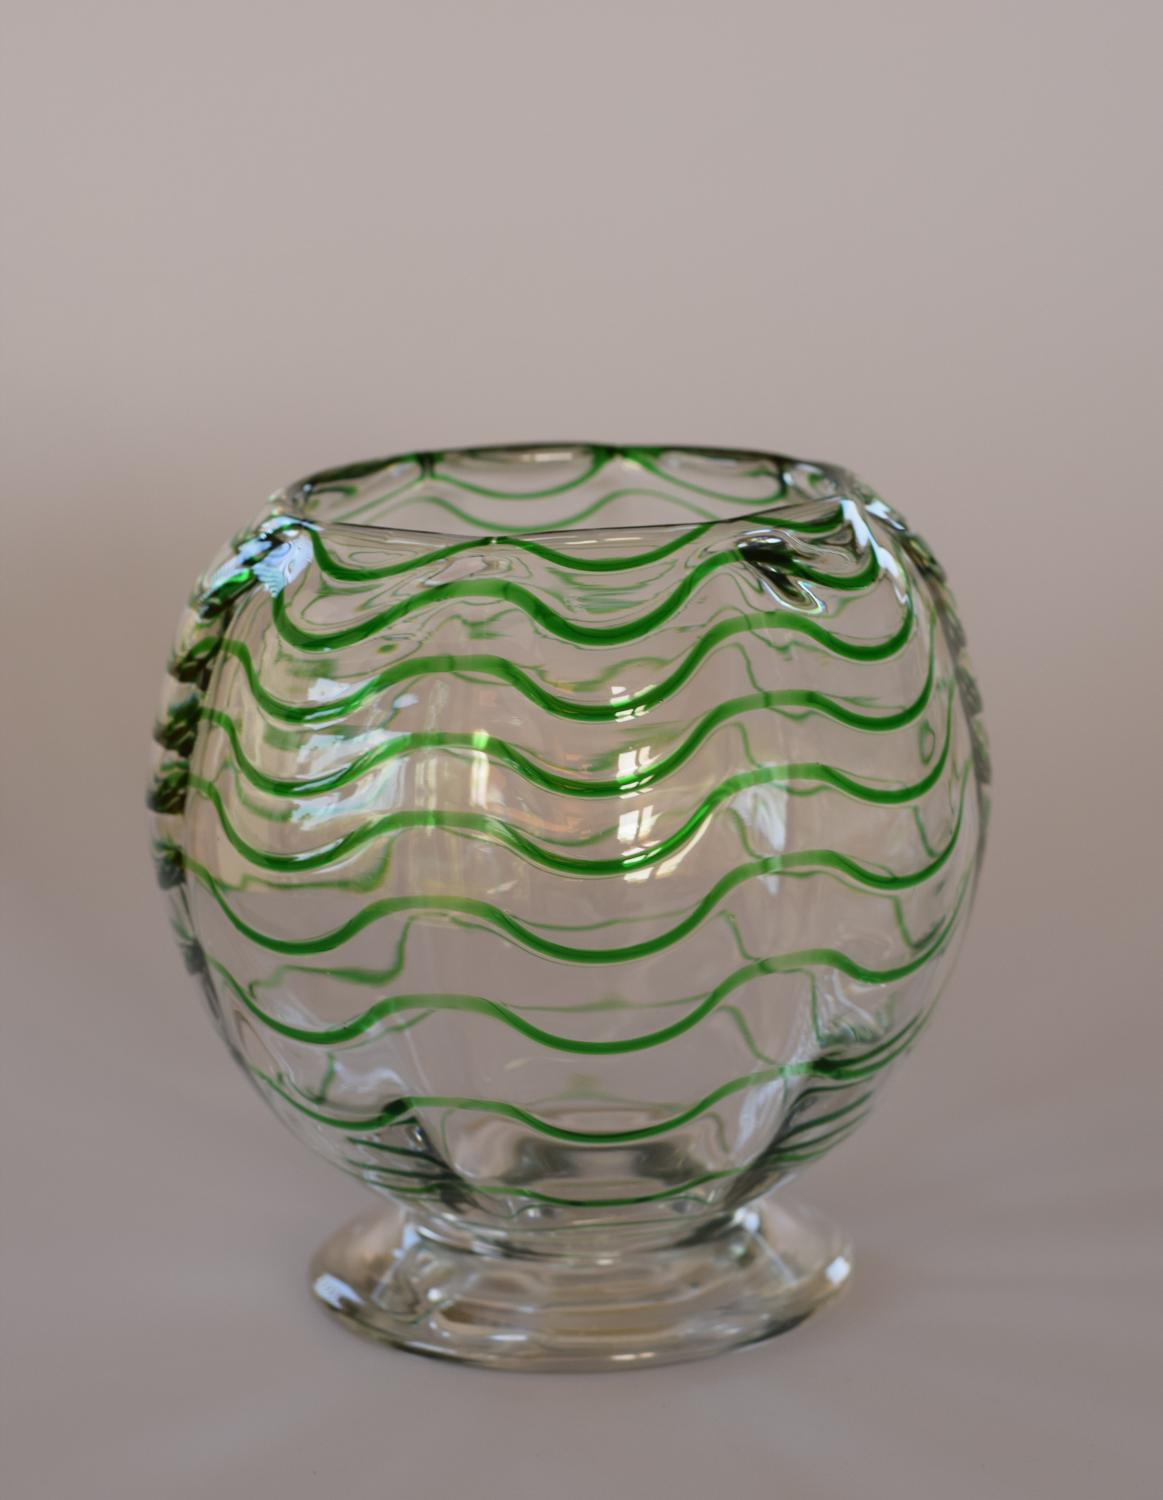 Green and white threaded vase, Webb.